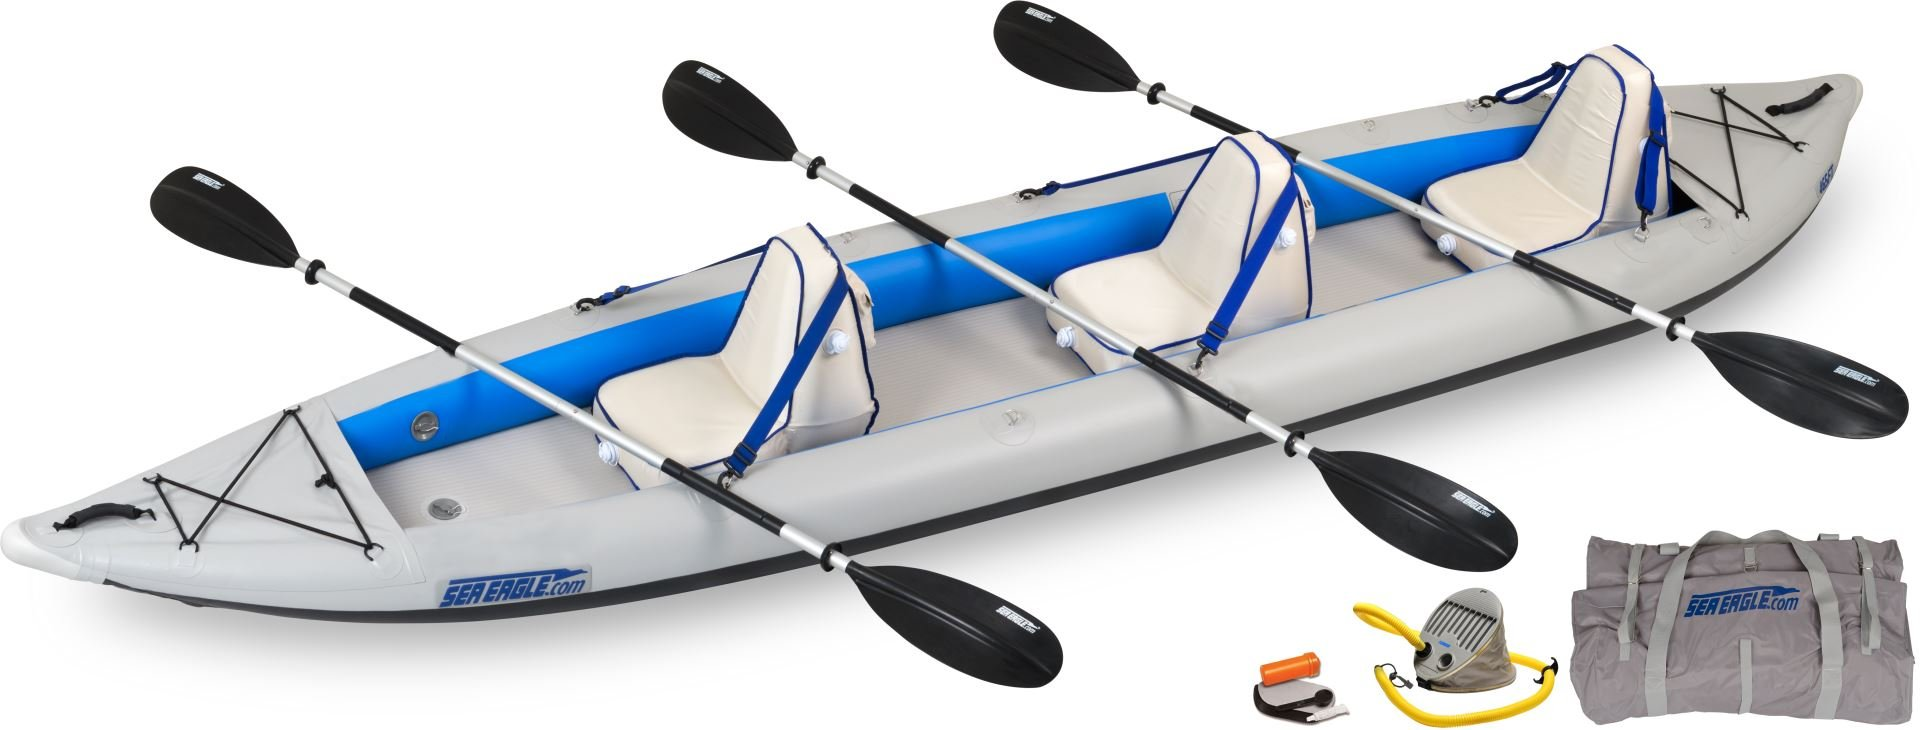 Sea Eagle 465FTKDT FastTrack 465-Feet Inflatable Kayak Deluxe Package